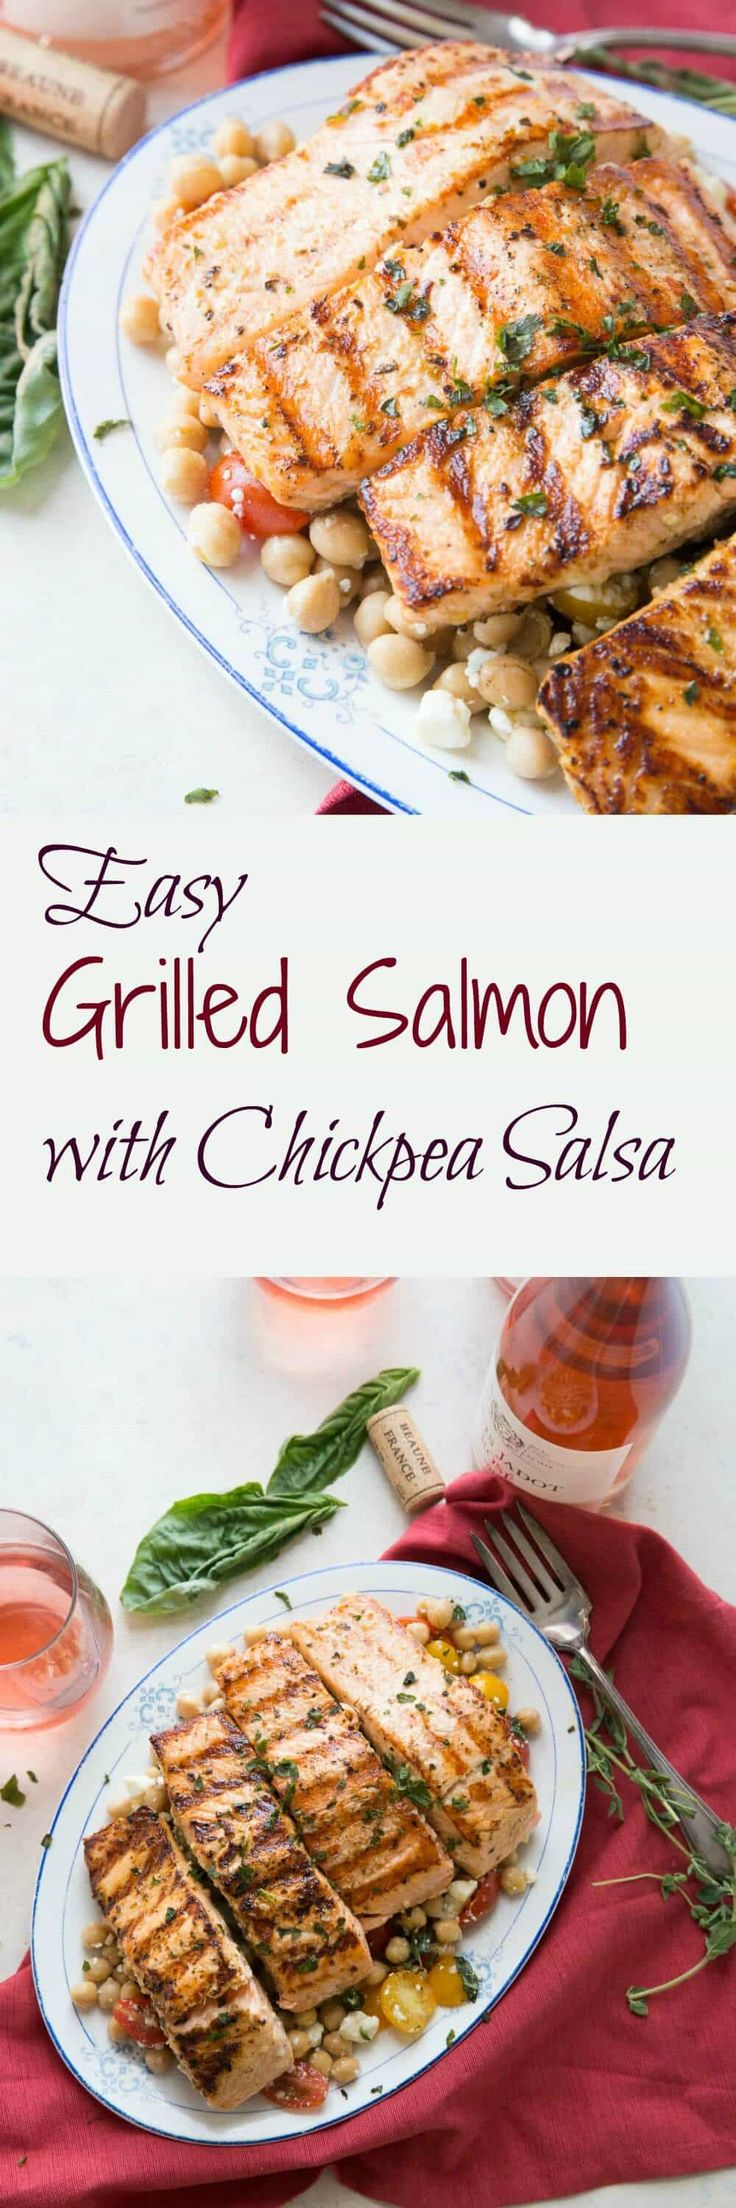 Easy Grilled Salmon Recipe with Chickpea Salsa